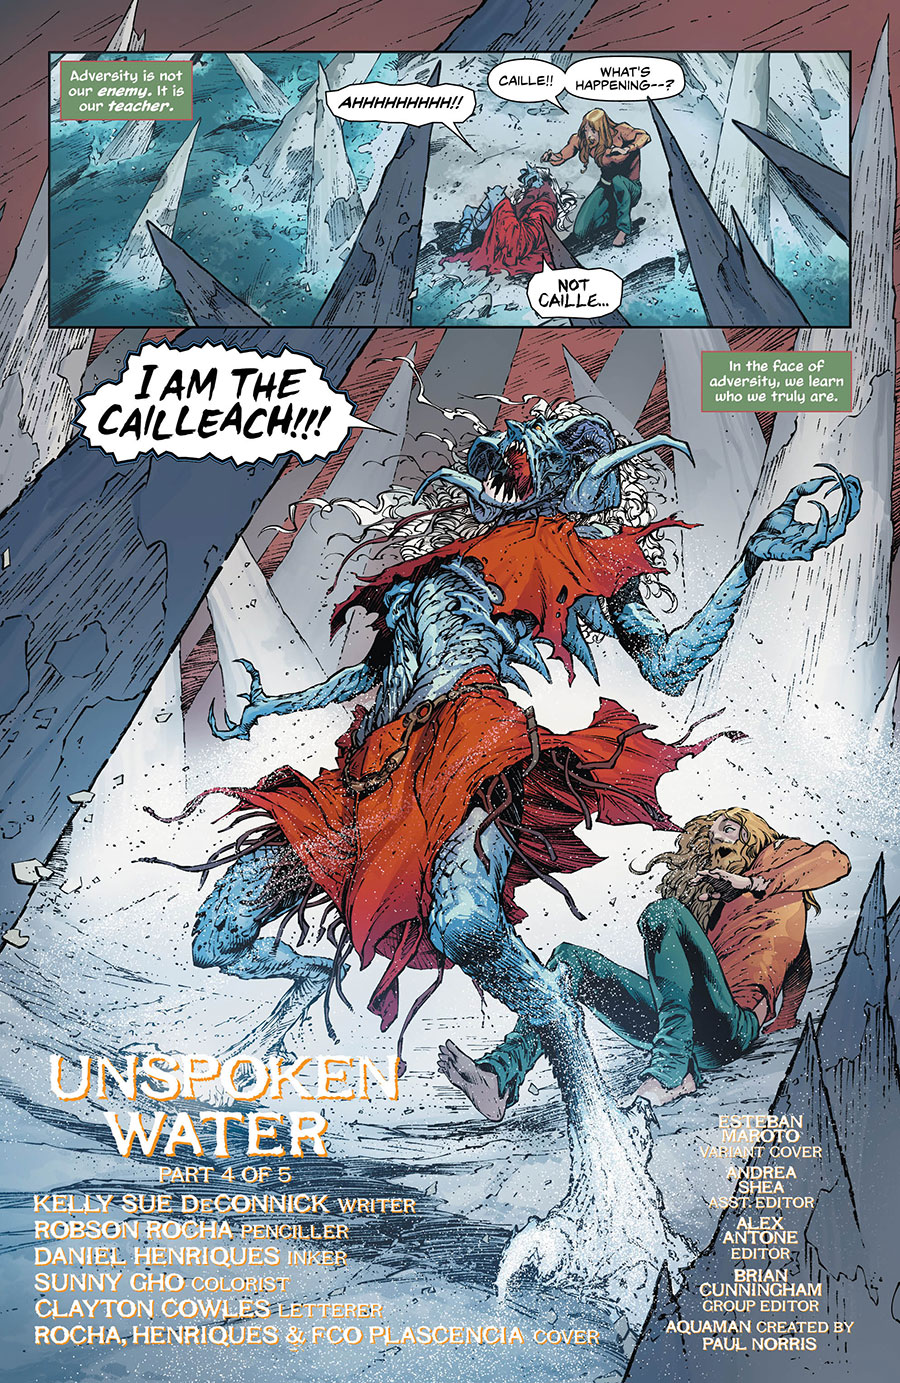 Aquaman_46_1 - DC Comics News